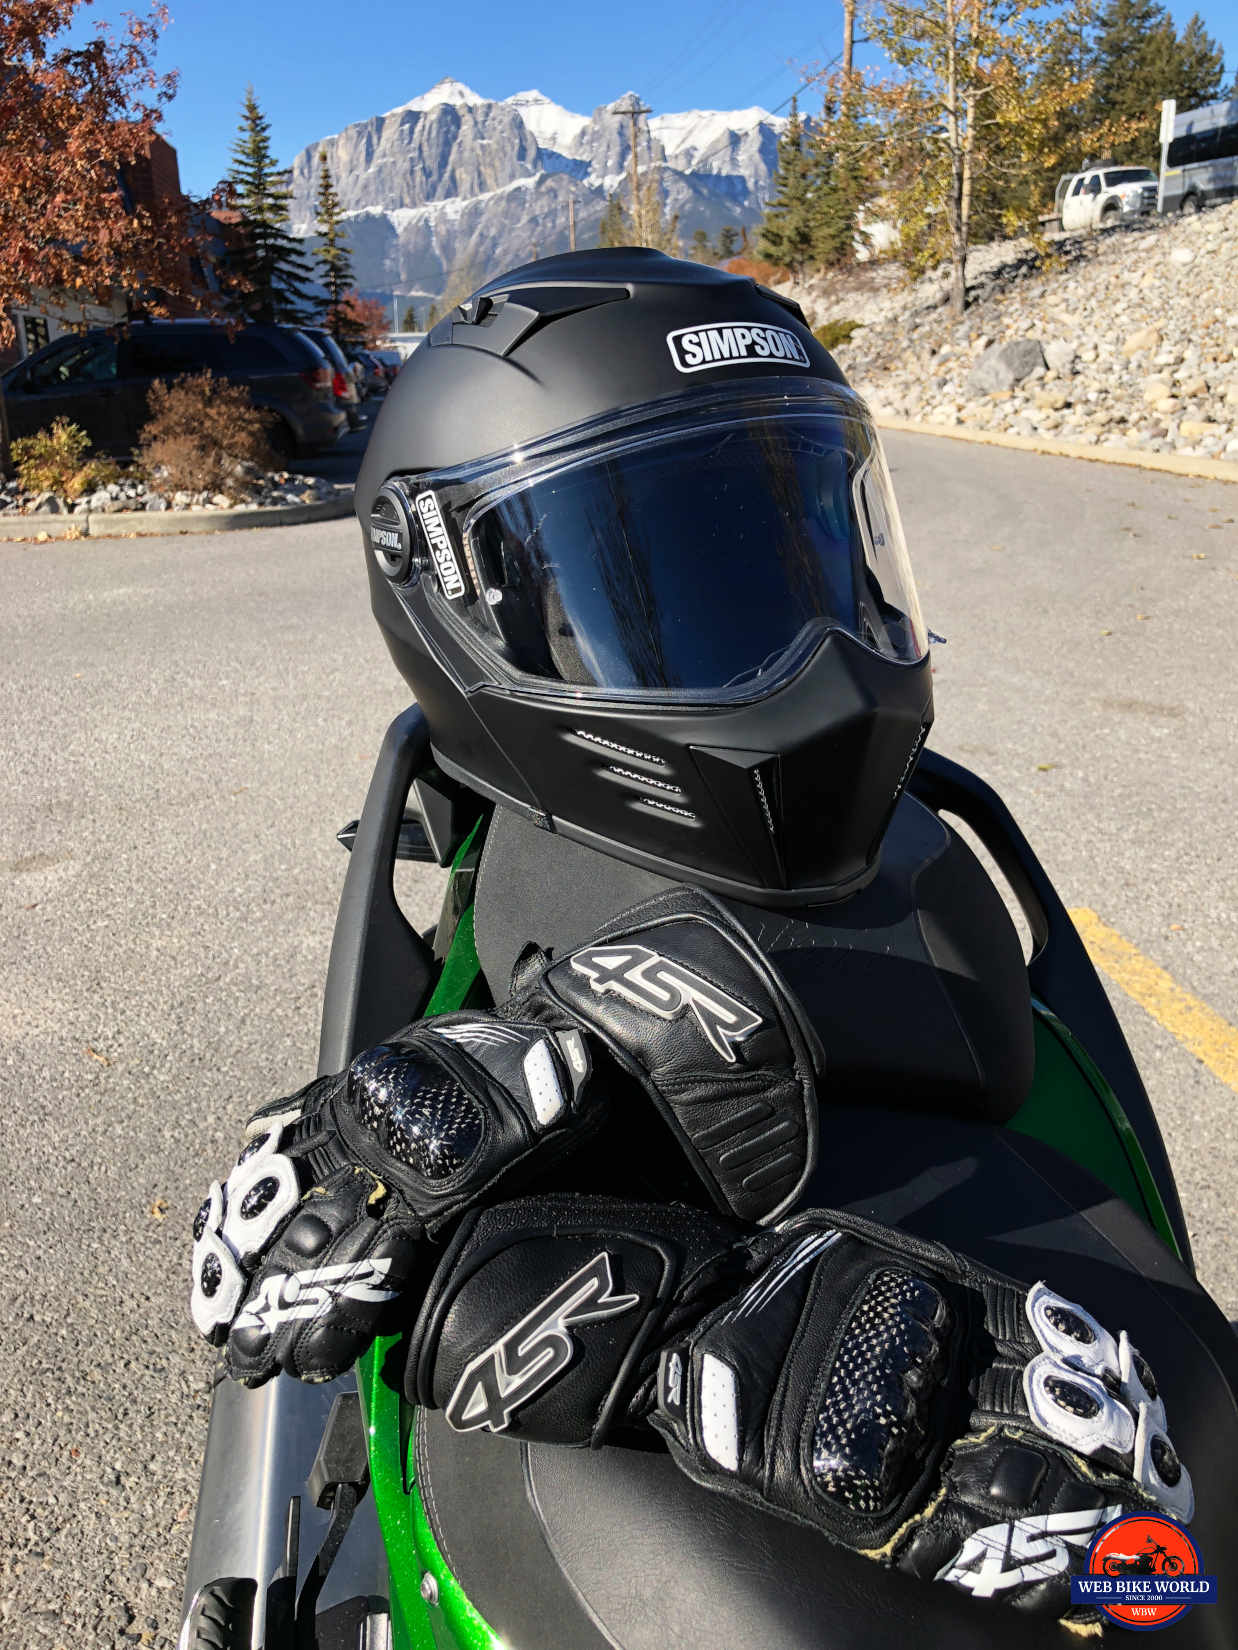 Why Should Wearing A Helmet When Motorcycling : should, wearing, helmet, motorcycling, Helmet, Survey, Shows, Motorcyclist, Wrong, WebBikeWorld